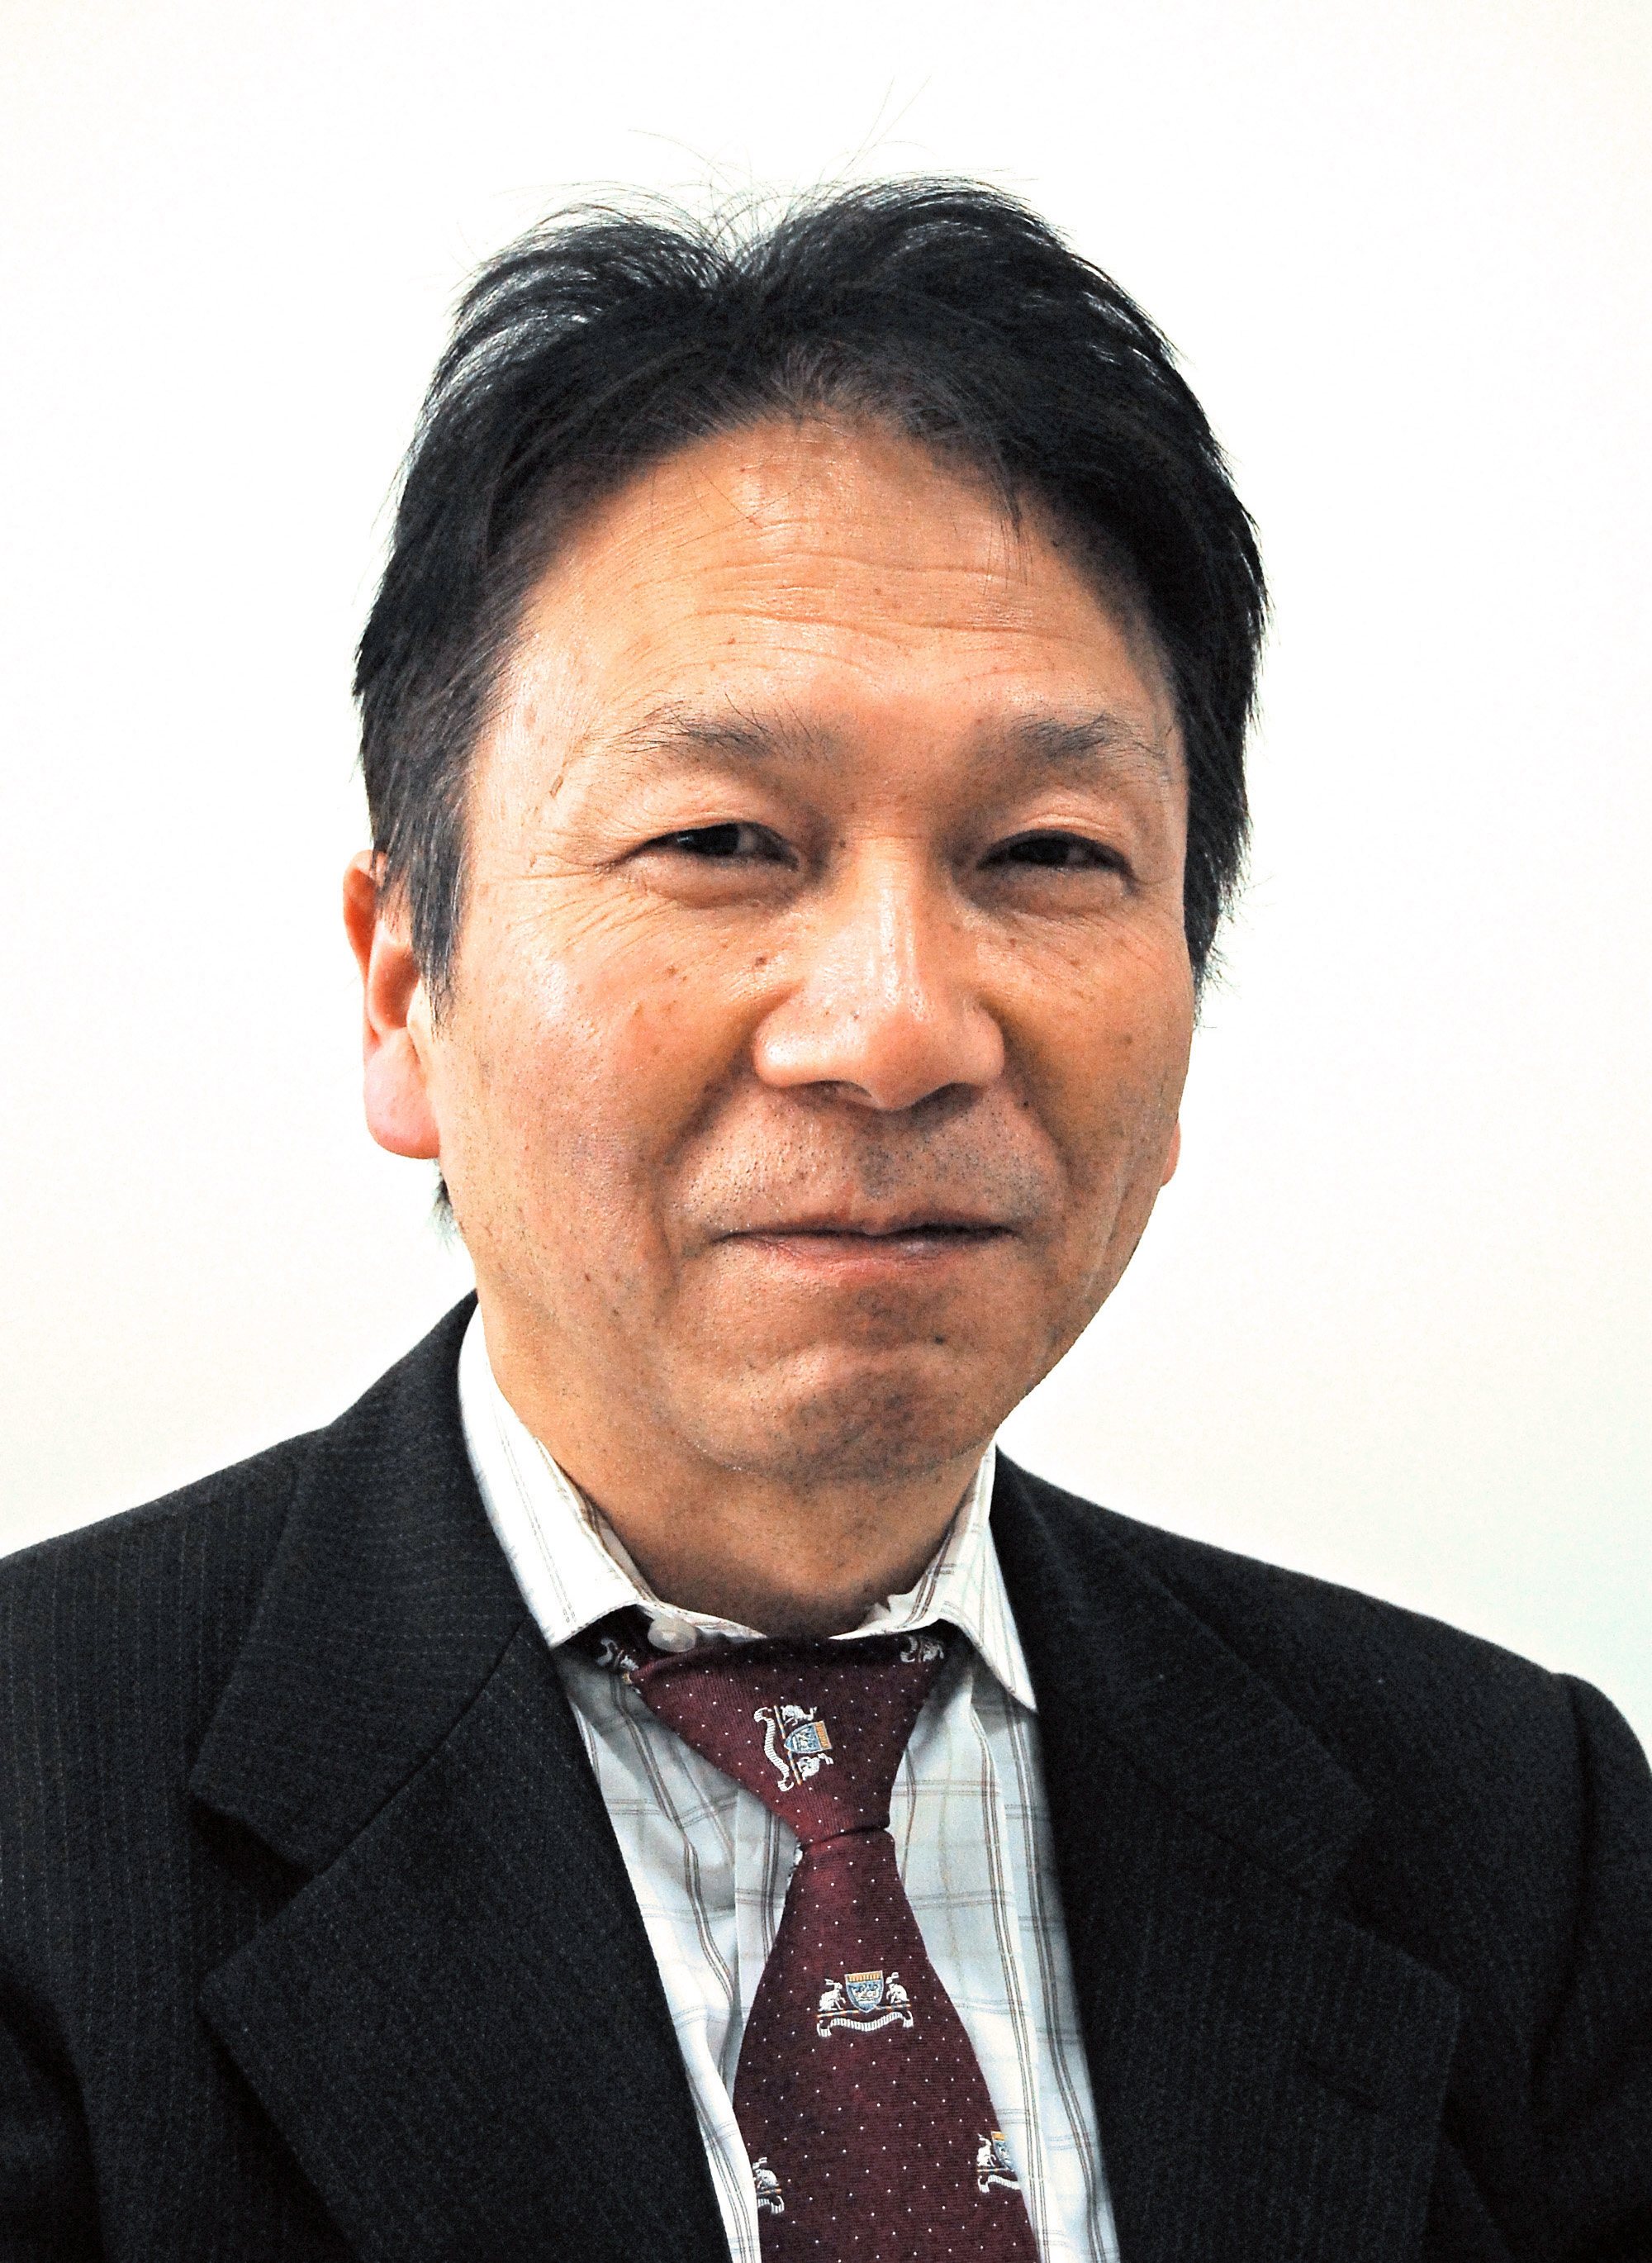 IWATA Kazumasa, President of the Japan Center for Economic Research (JCER)